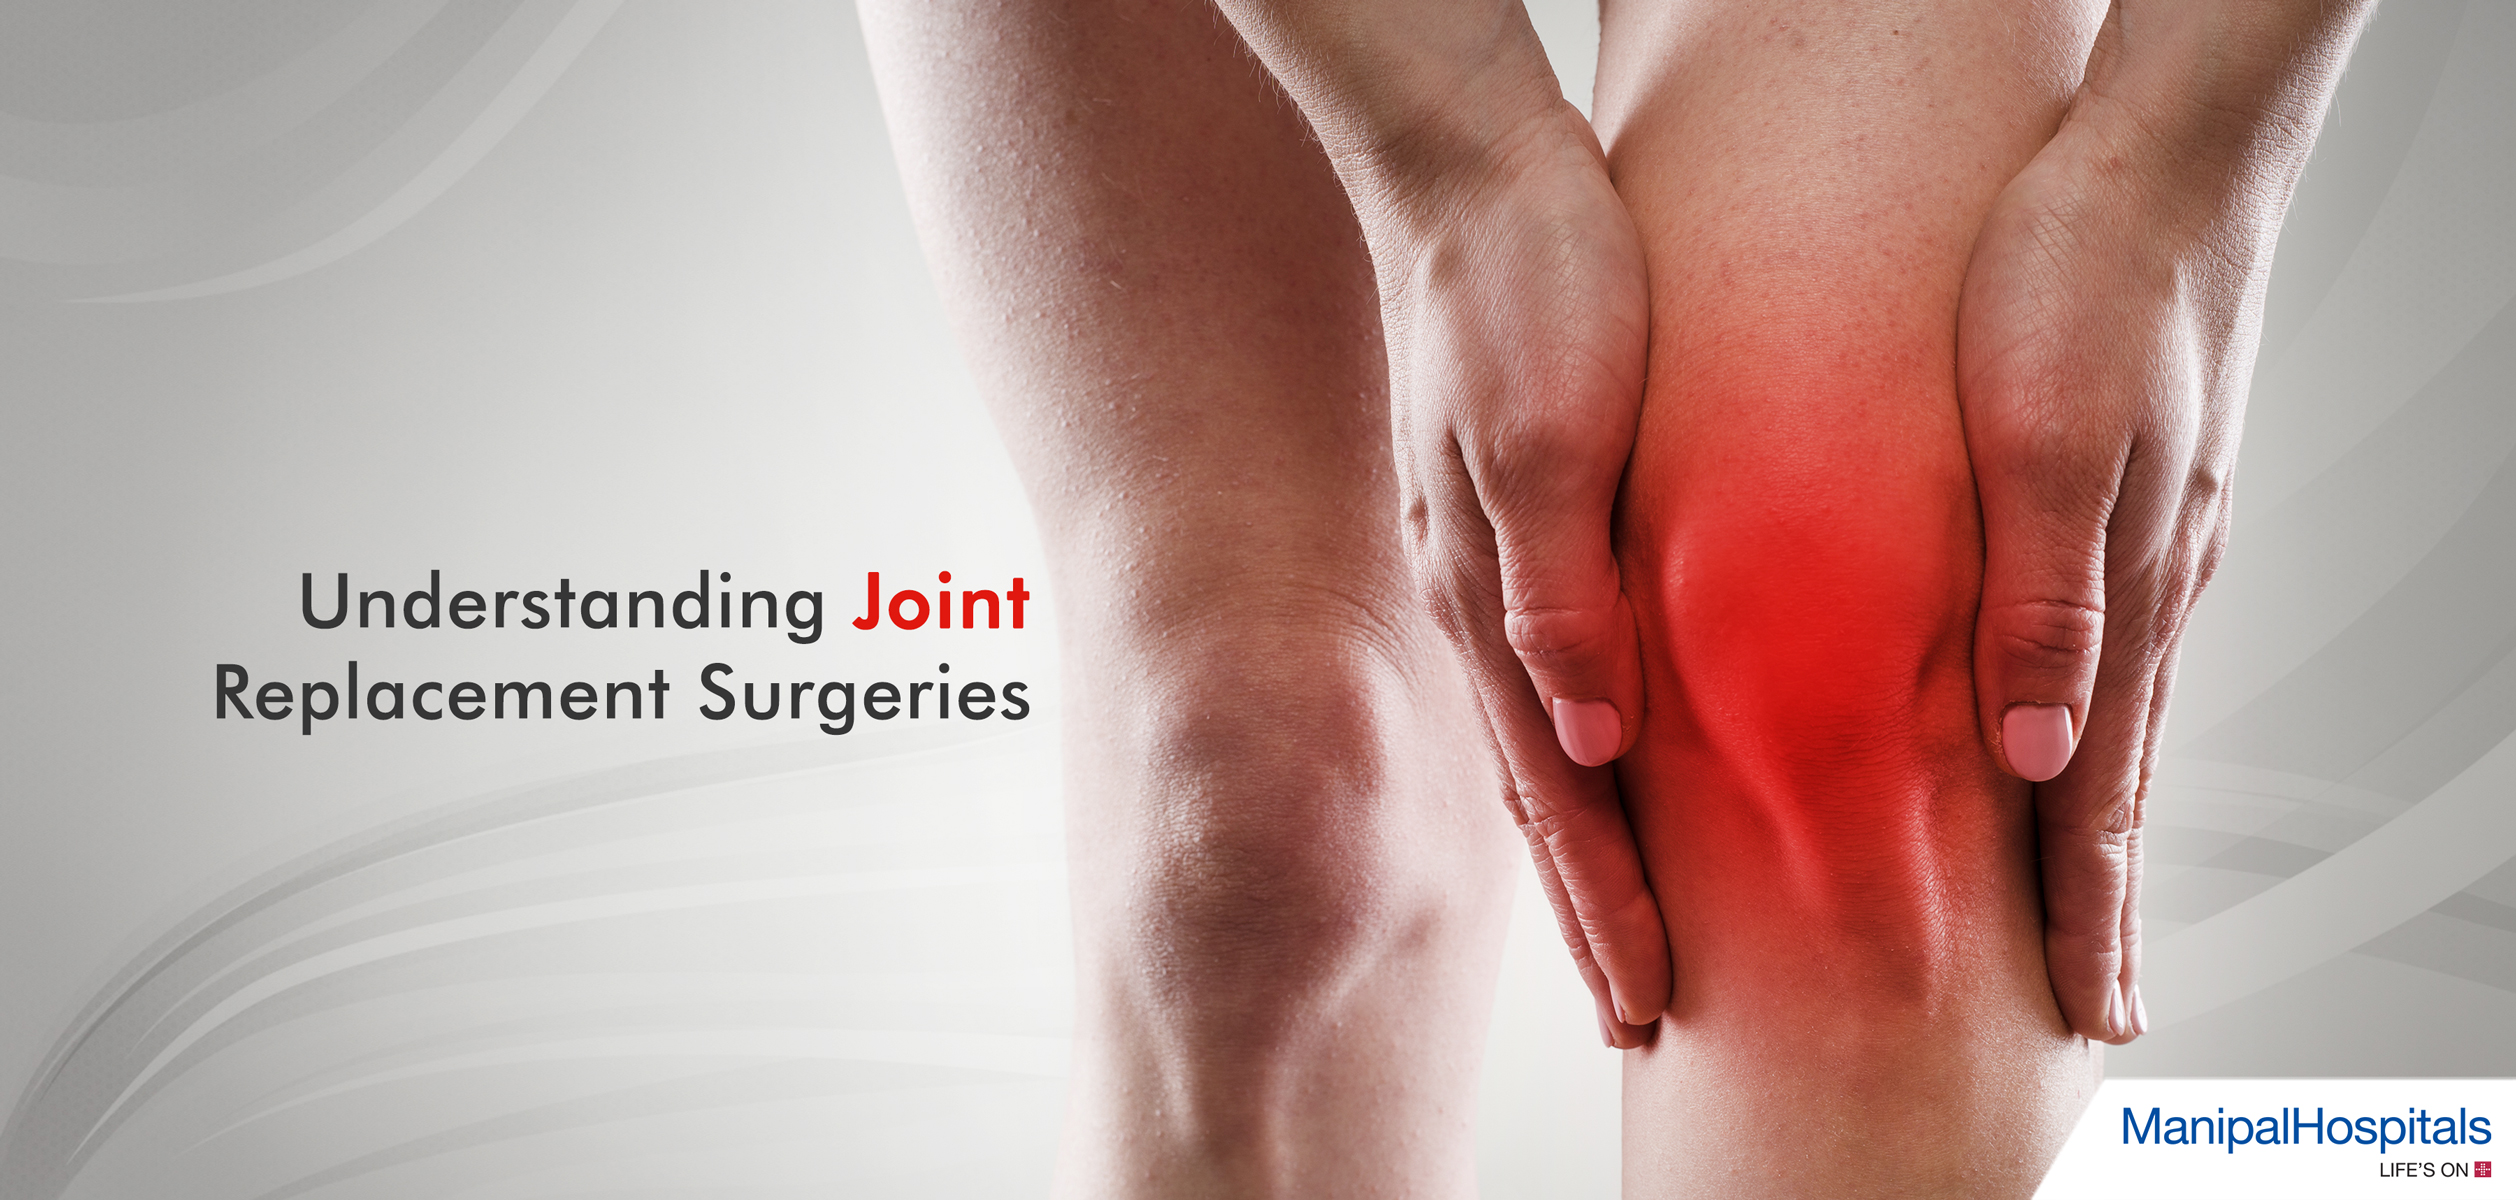 Understanding Joint Replacement Surgeries